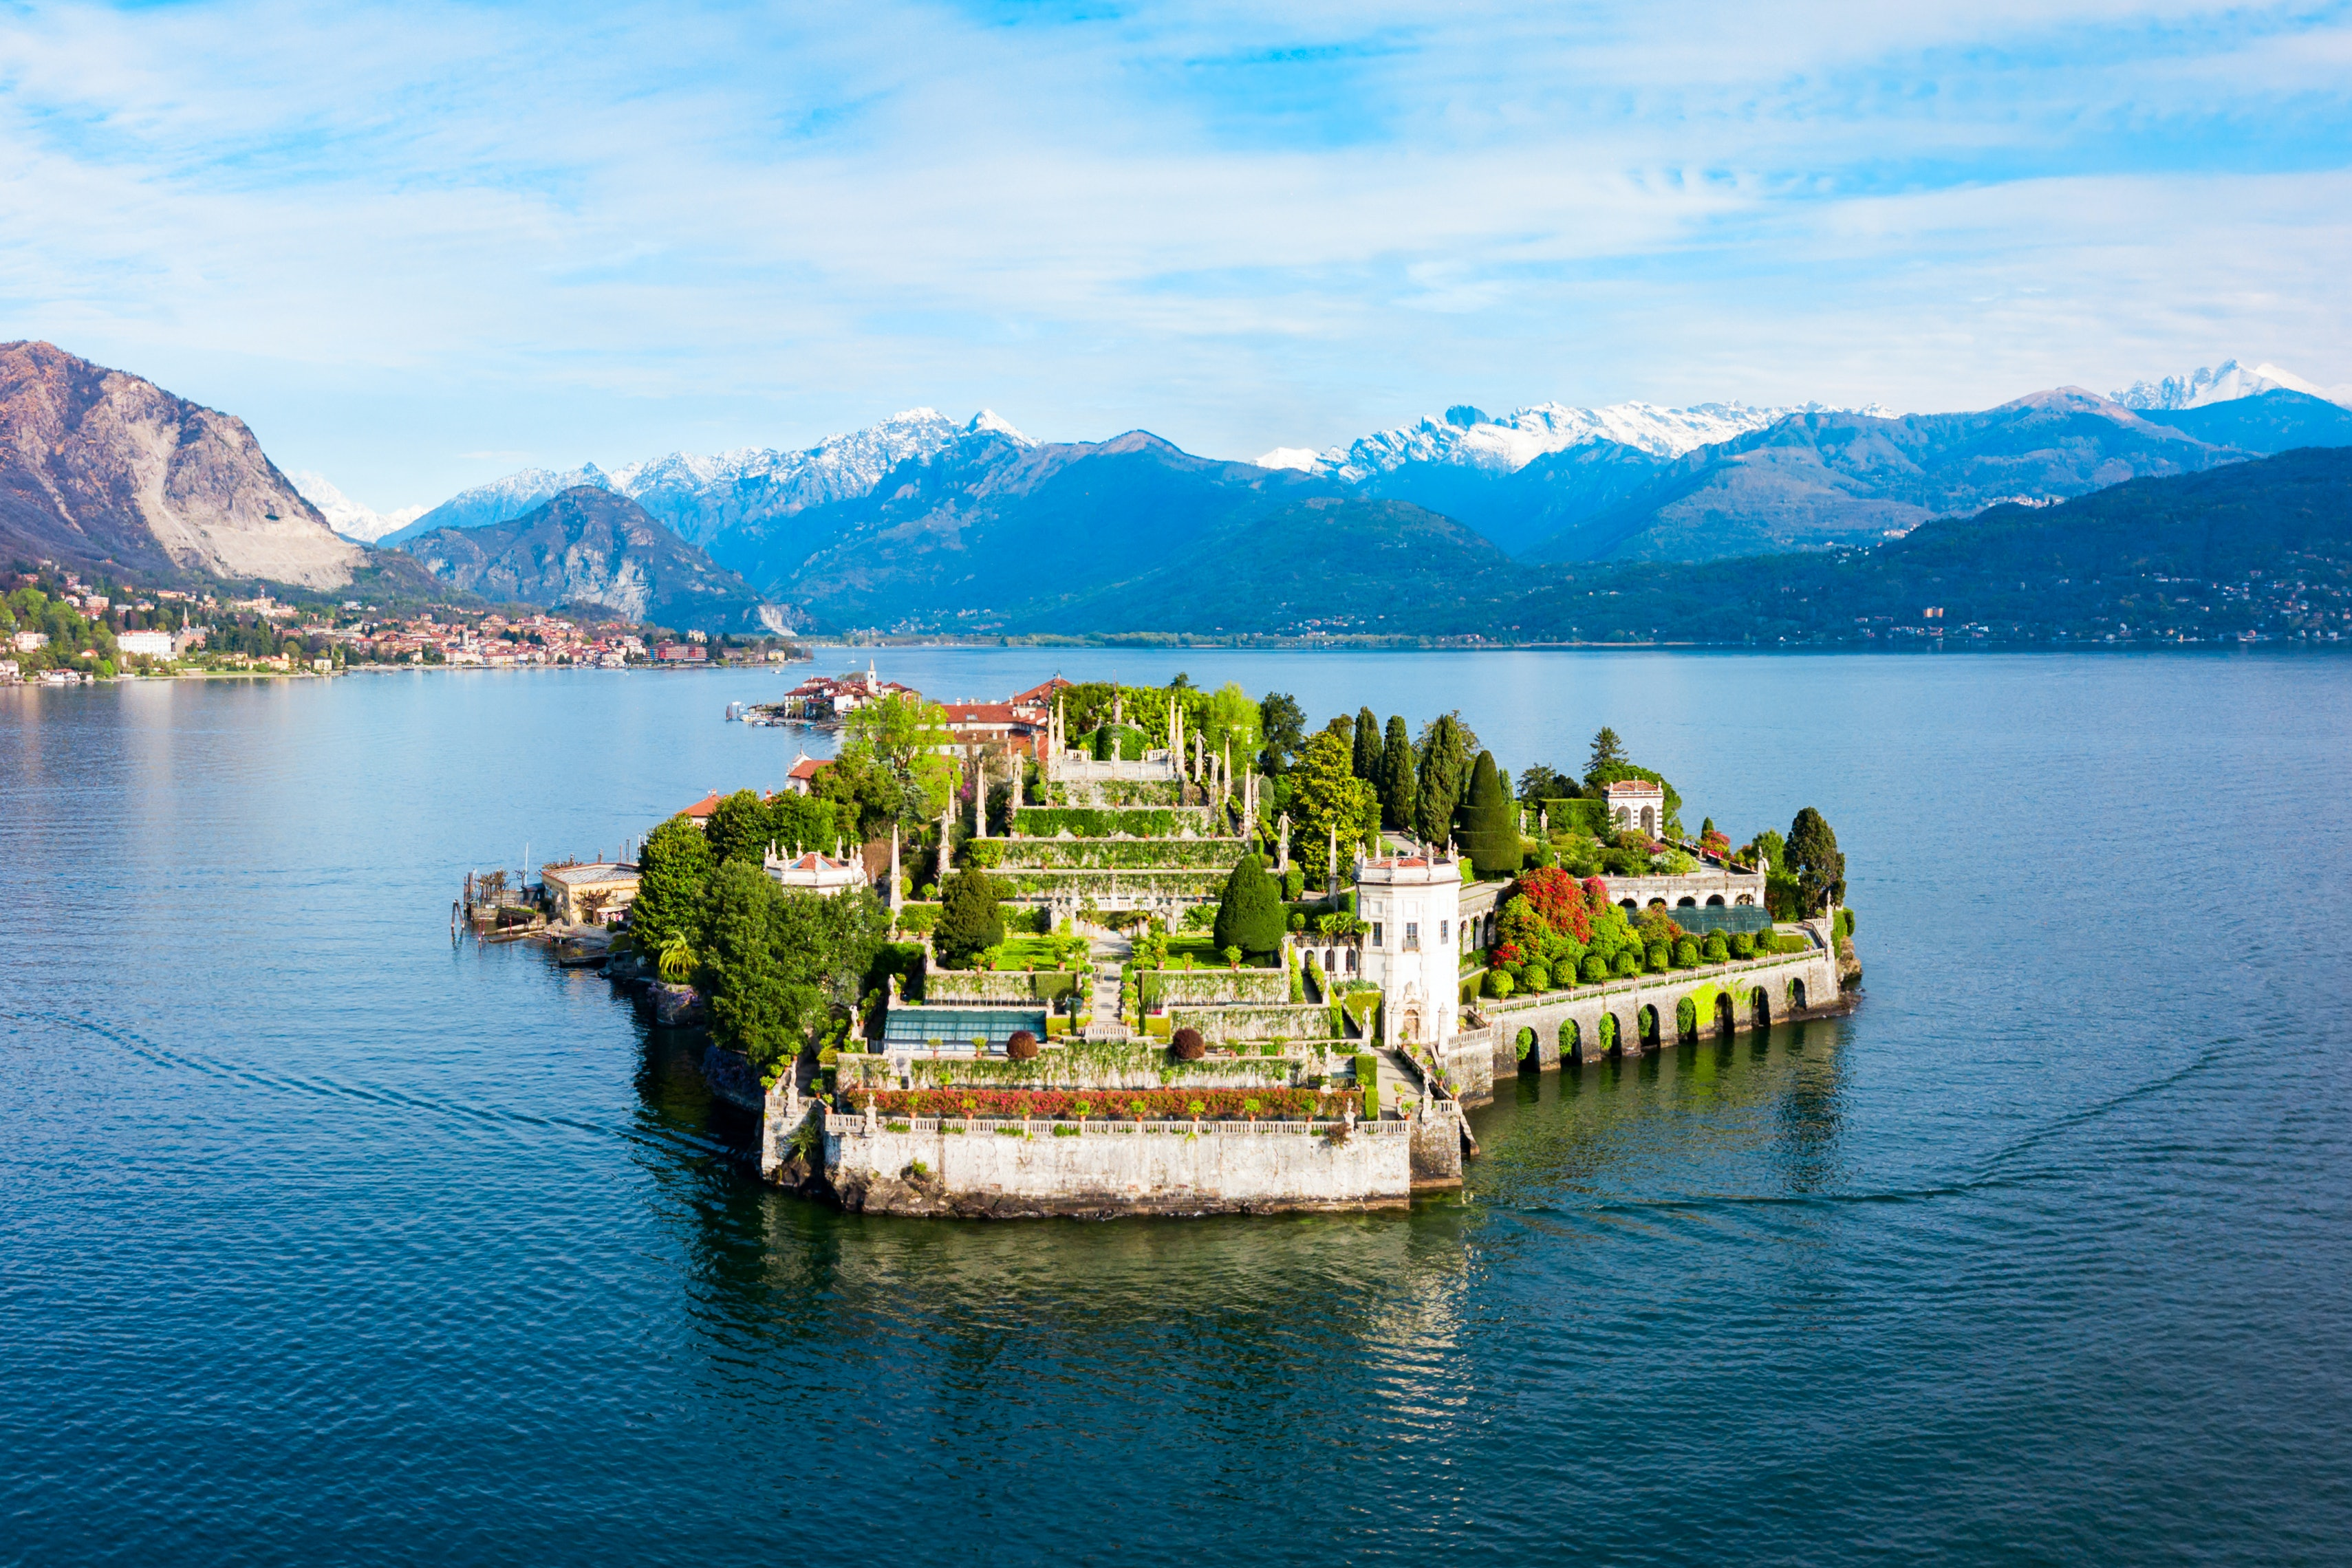 Italy | Italy images, India tour |Isola Bella Island Tour